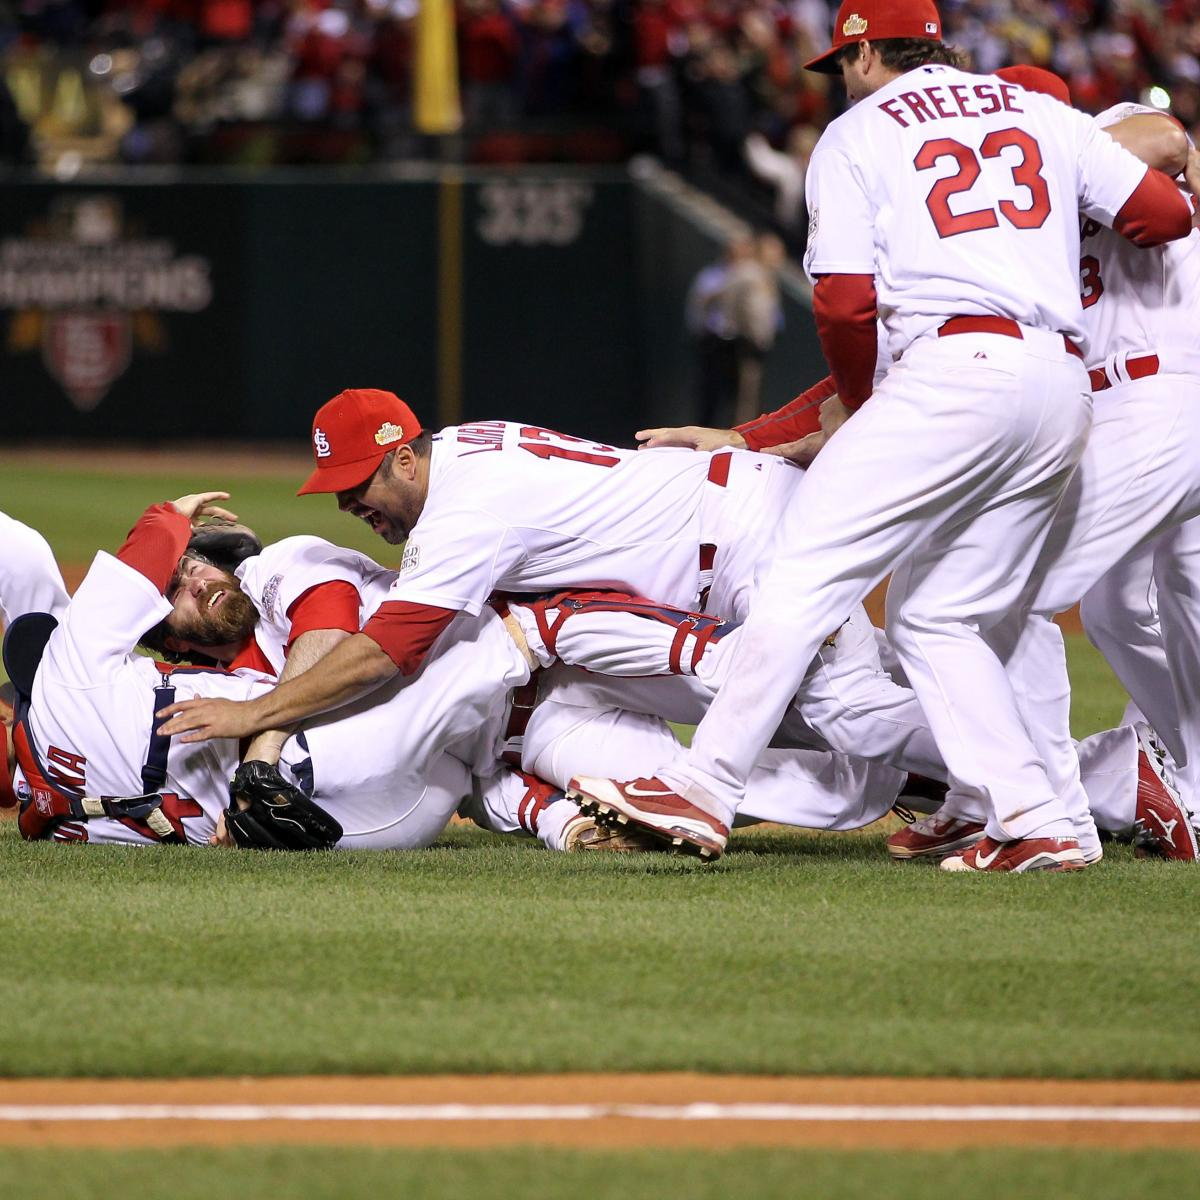 MLB: New Playoff Format Will Increase Player Salaries   Bleacher Report   Latest News, Videos ...